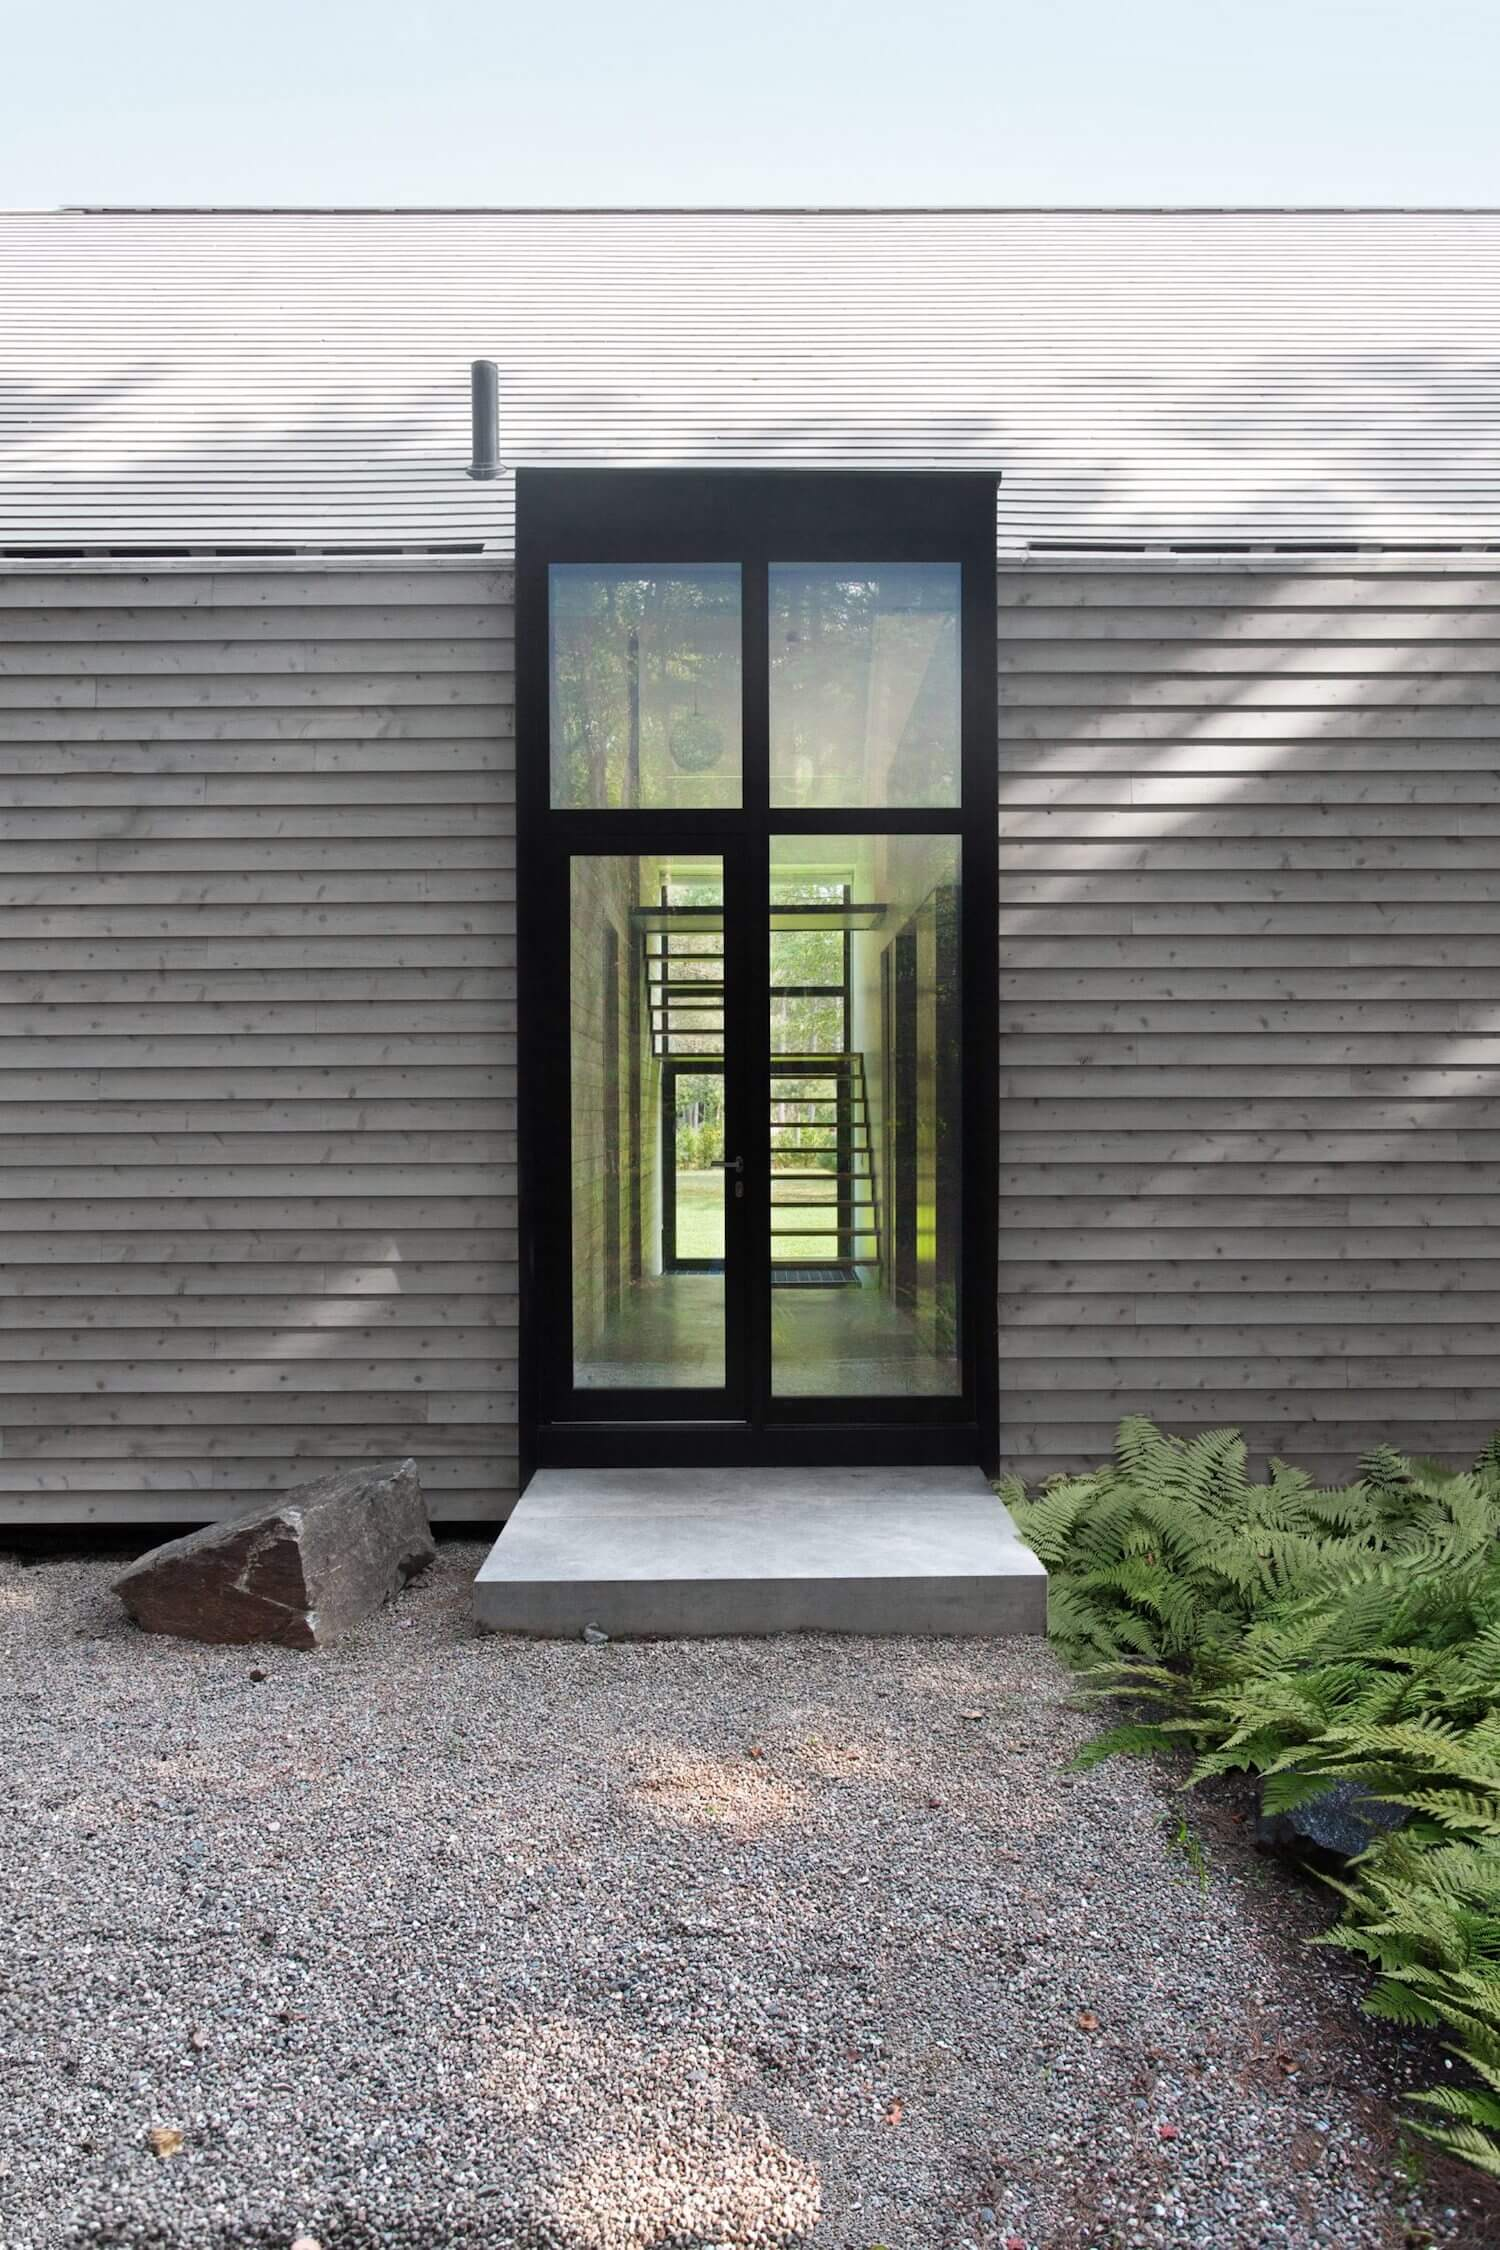 est living roundup log cabins window on the lake yh2 architecture 3